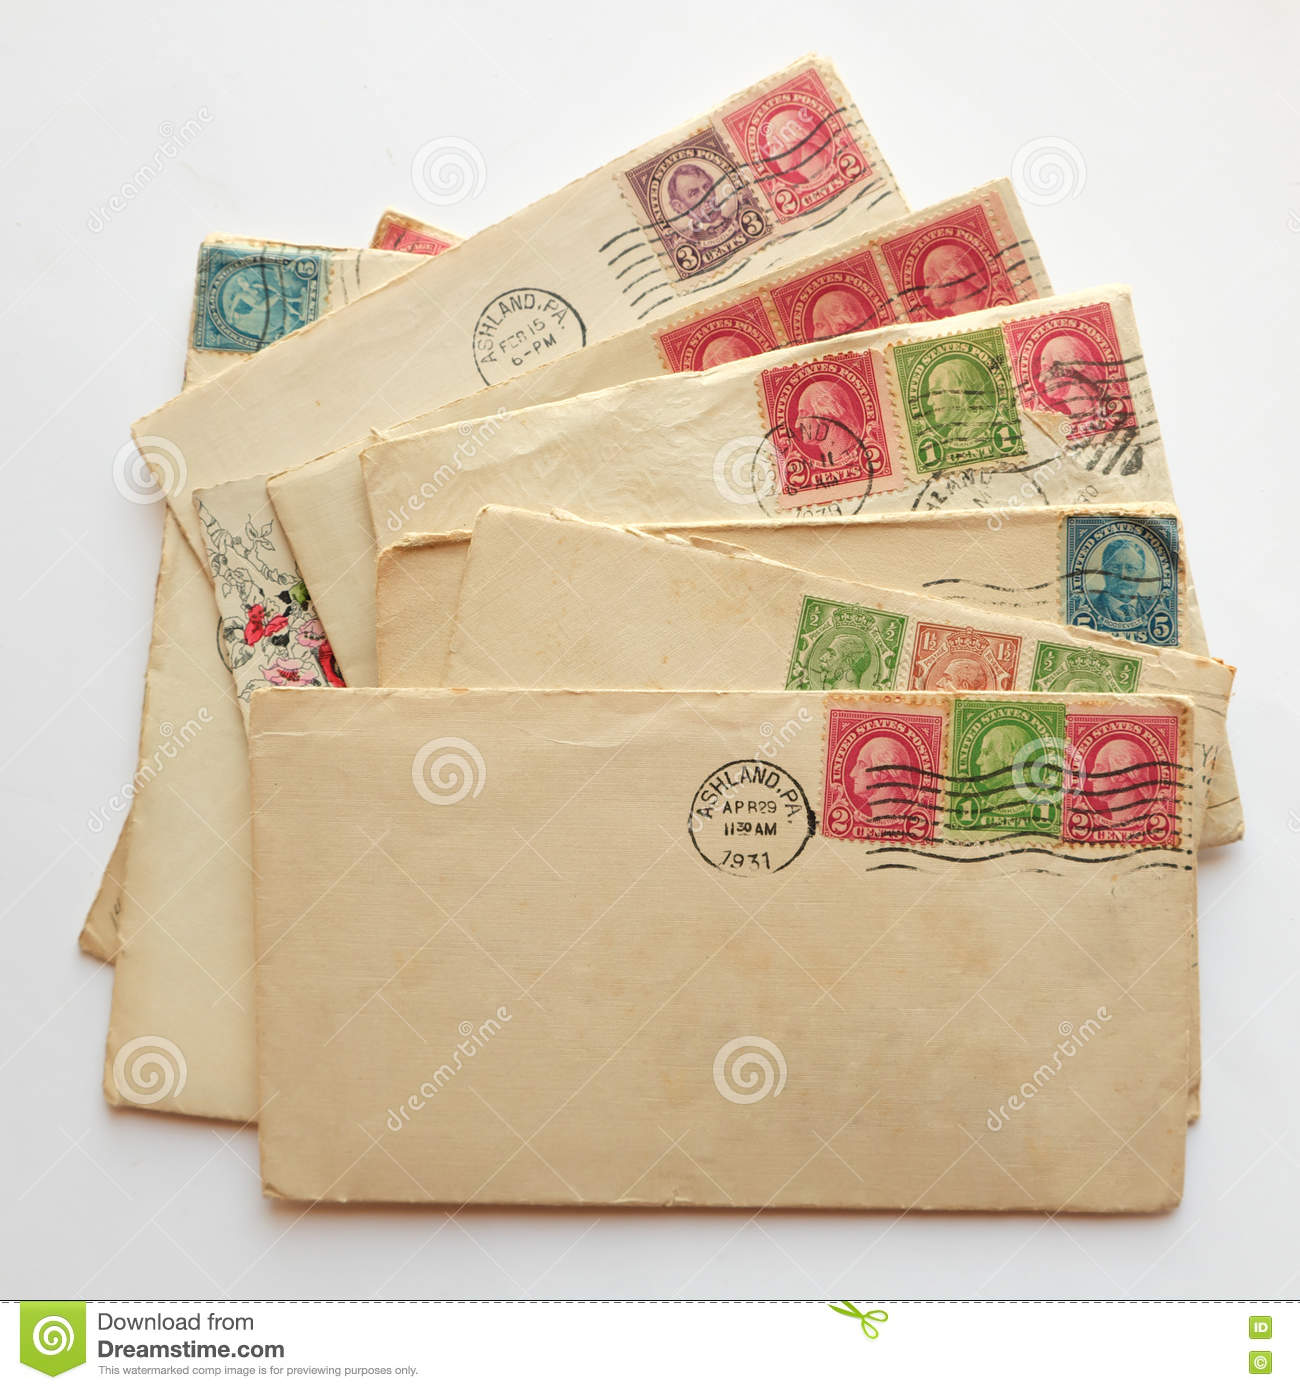 postage cost for 8x11 envelope